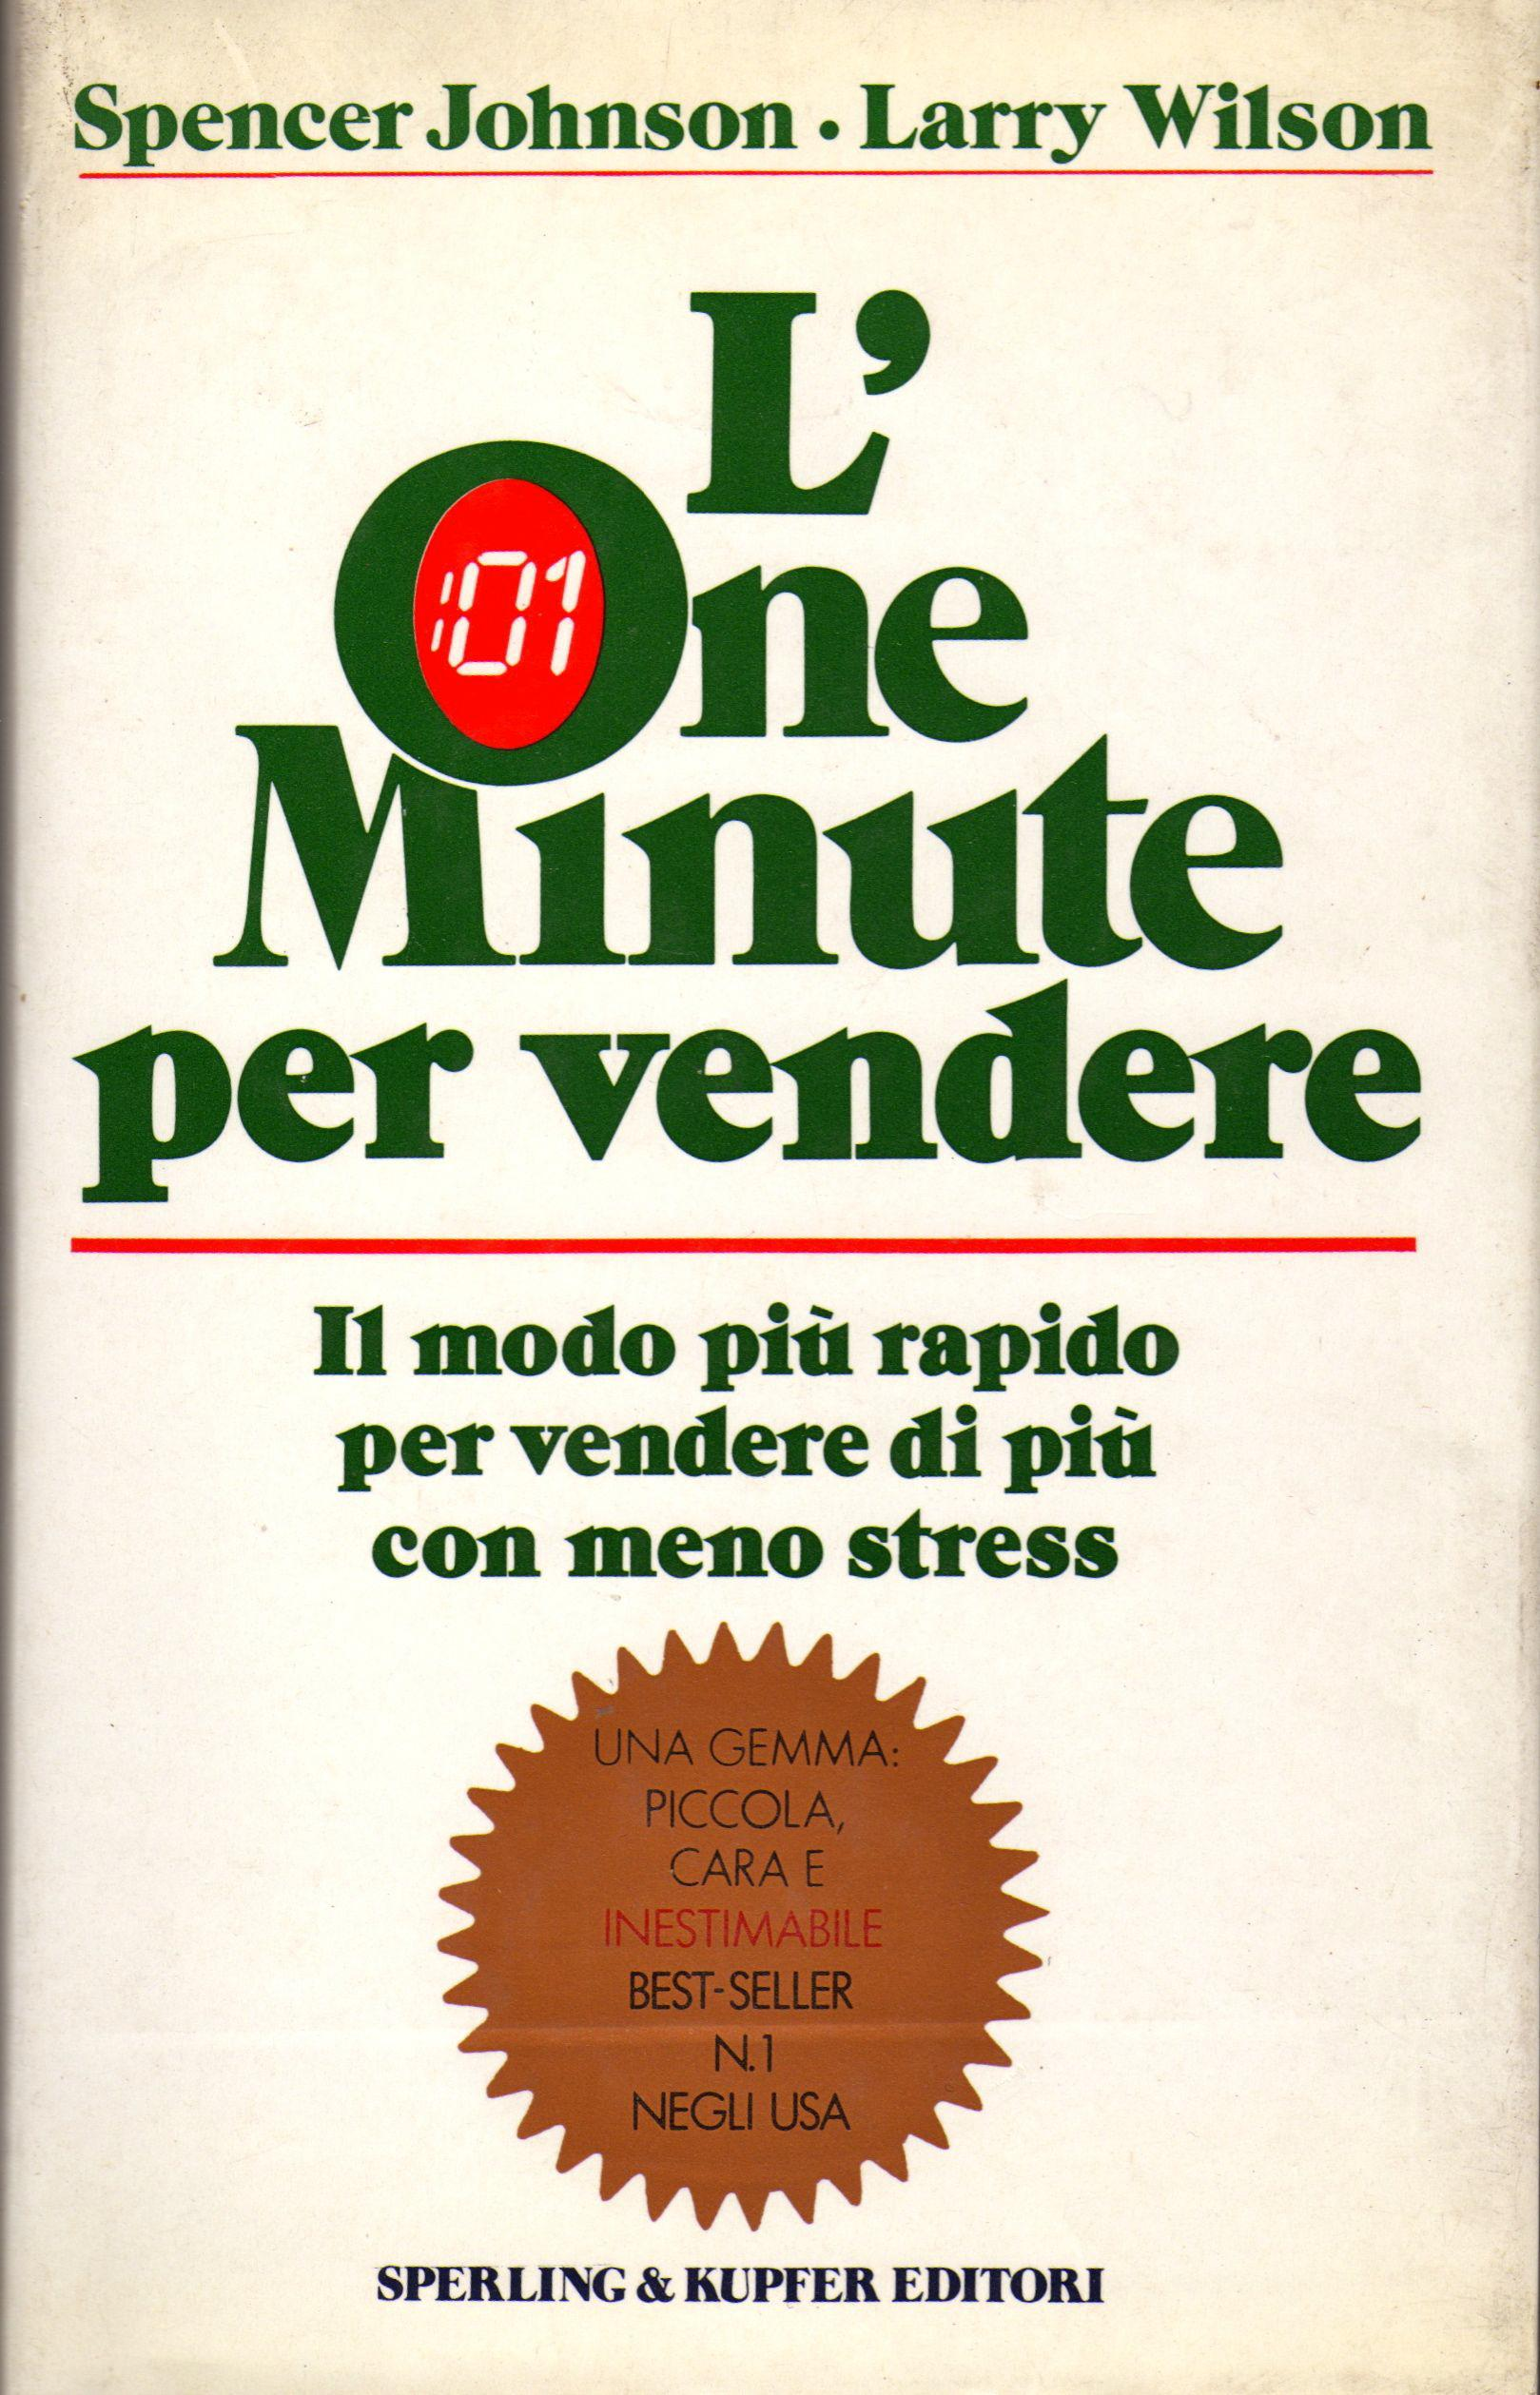 L'one minute manager...